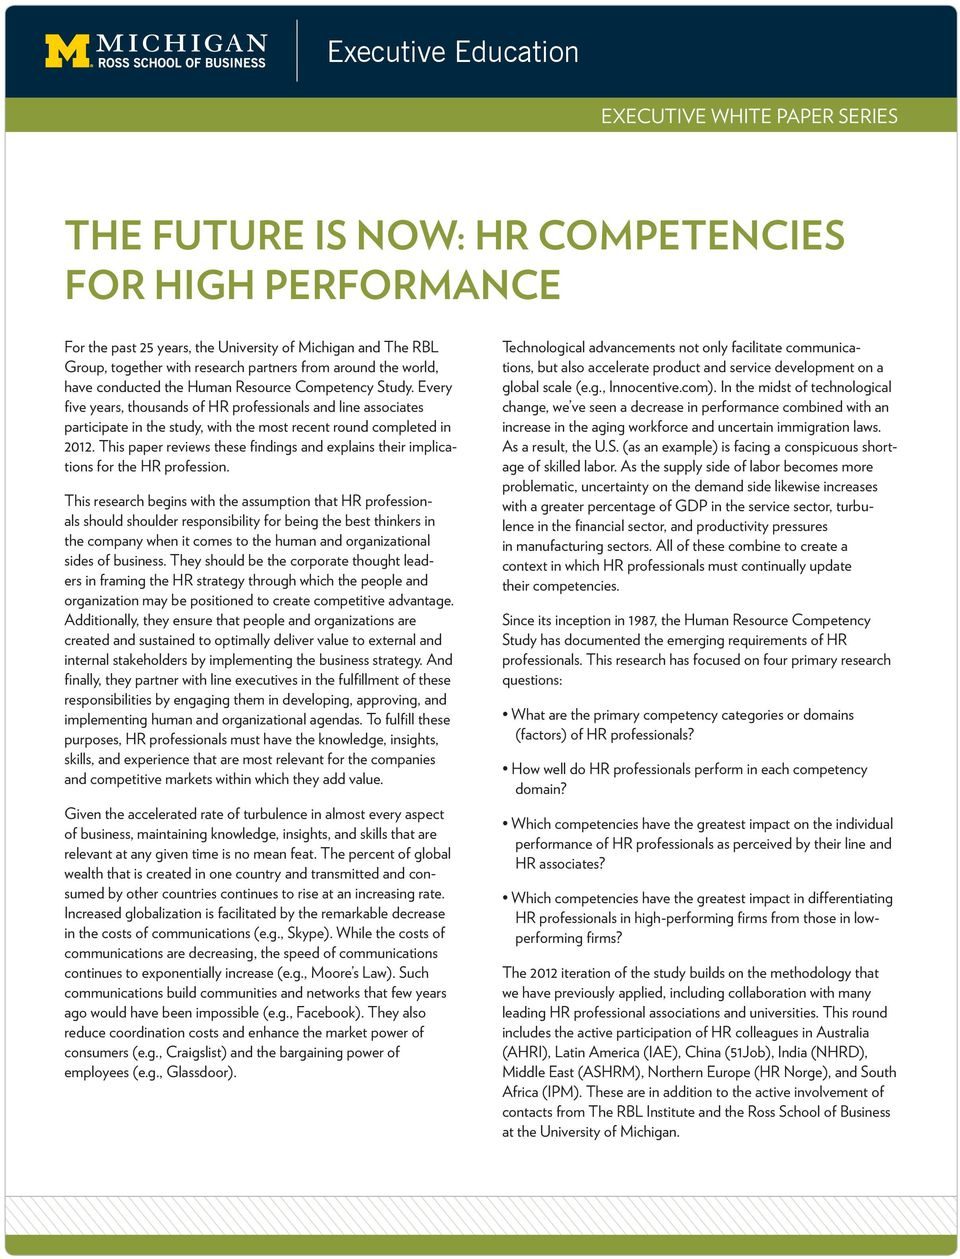 This paper reviews these findings and explains their implications for the HR profession.